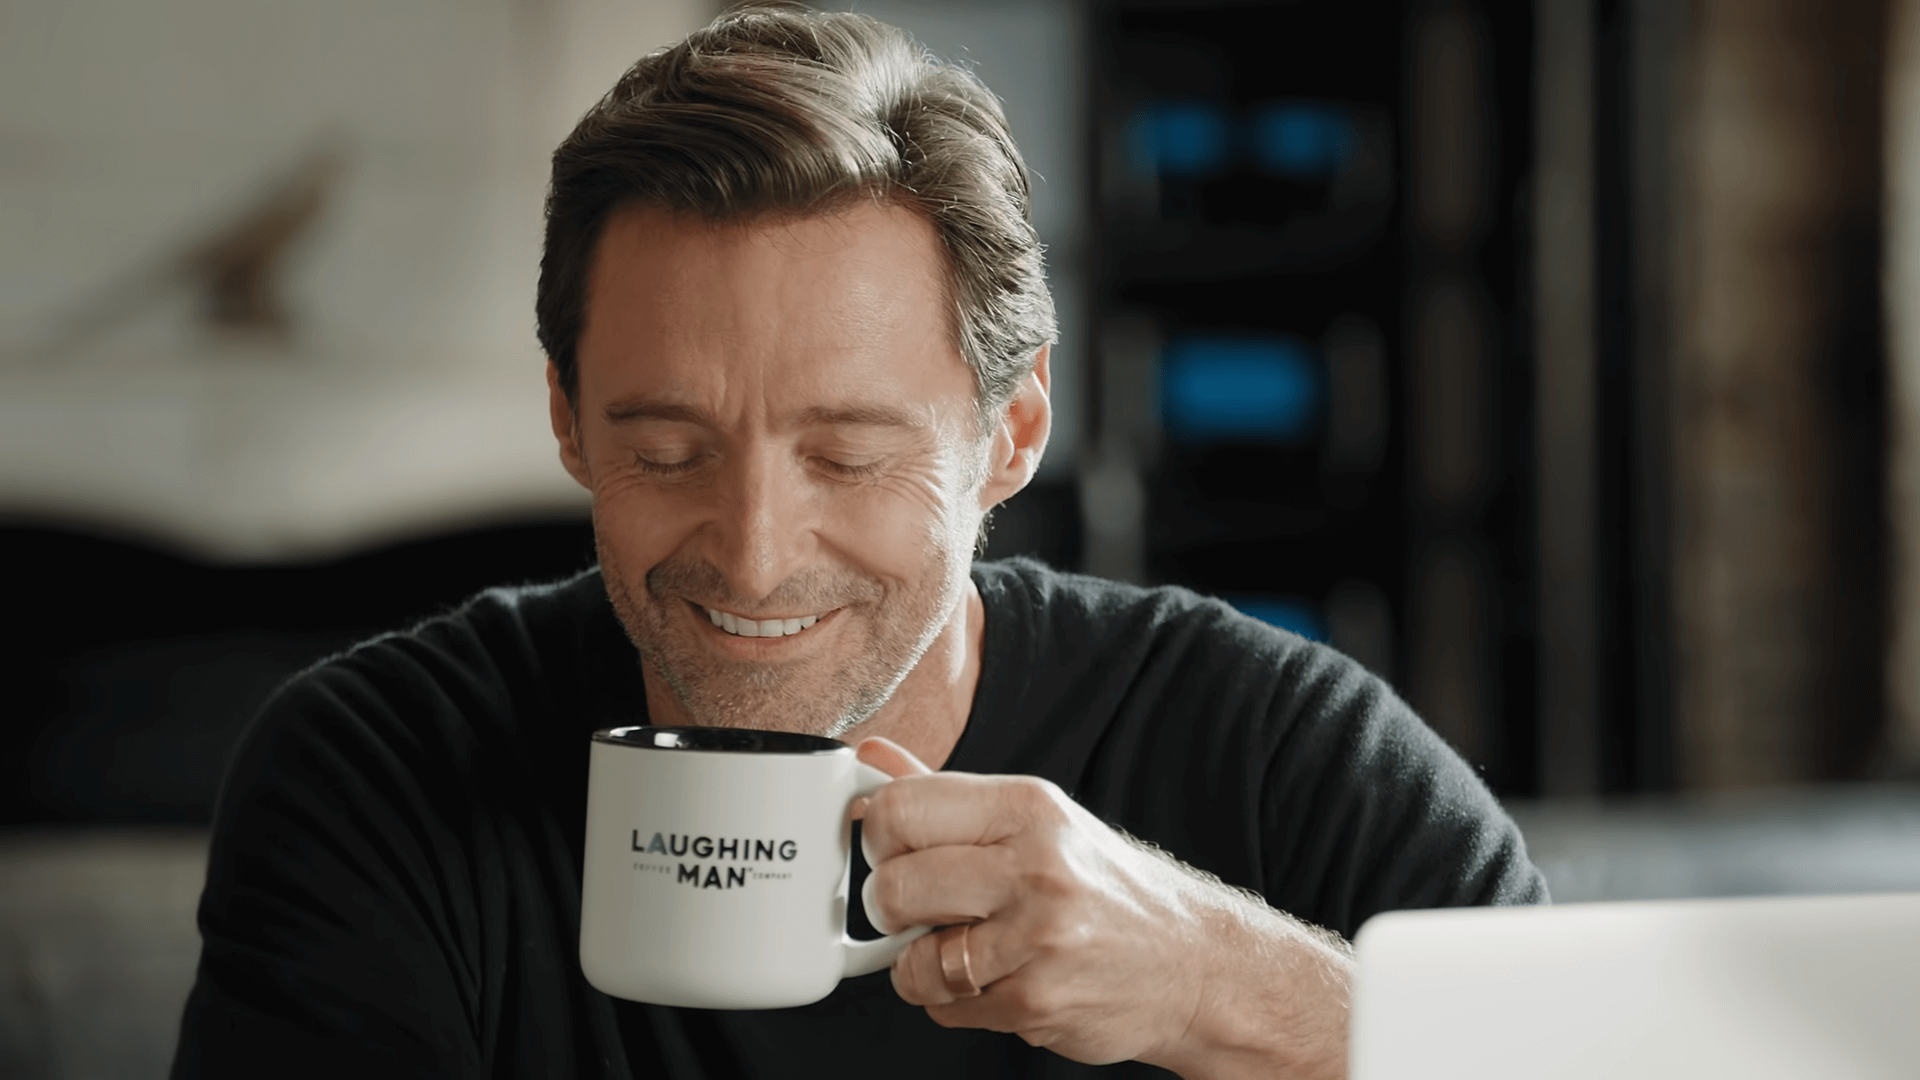 Campaign: Laughing Man Coffee - Nice Morning